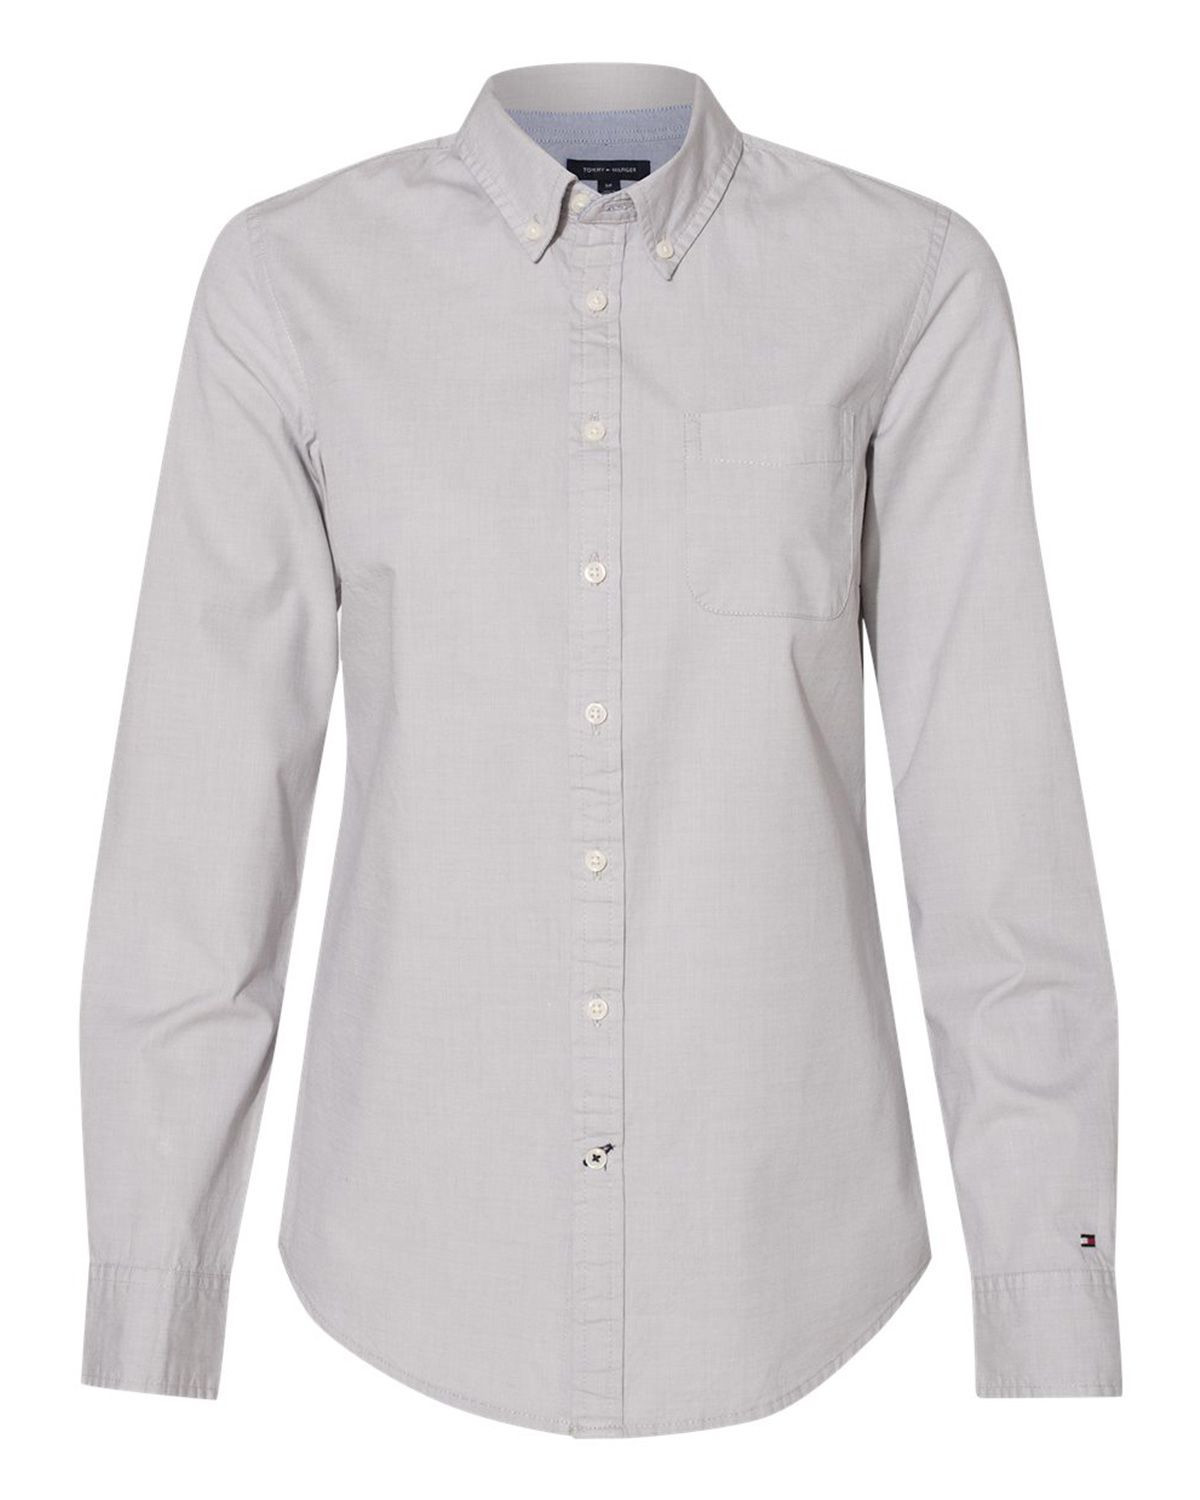 Tommy Hilfiger 13H4377 Women's Capote End-on-End Chambray Shirt - Vapor - S #vapor